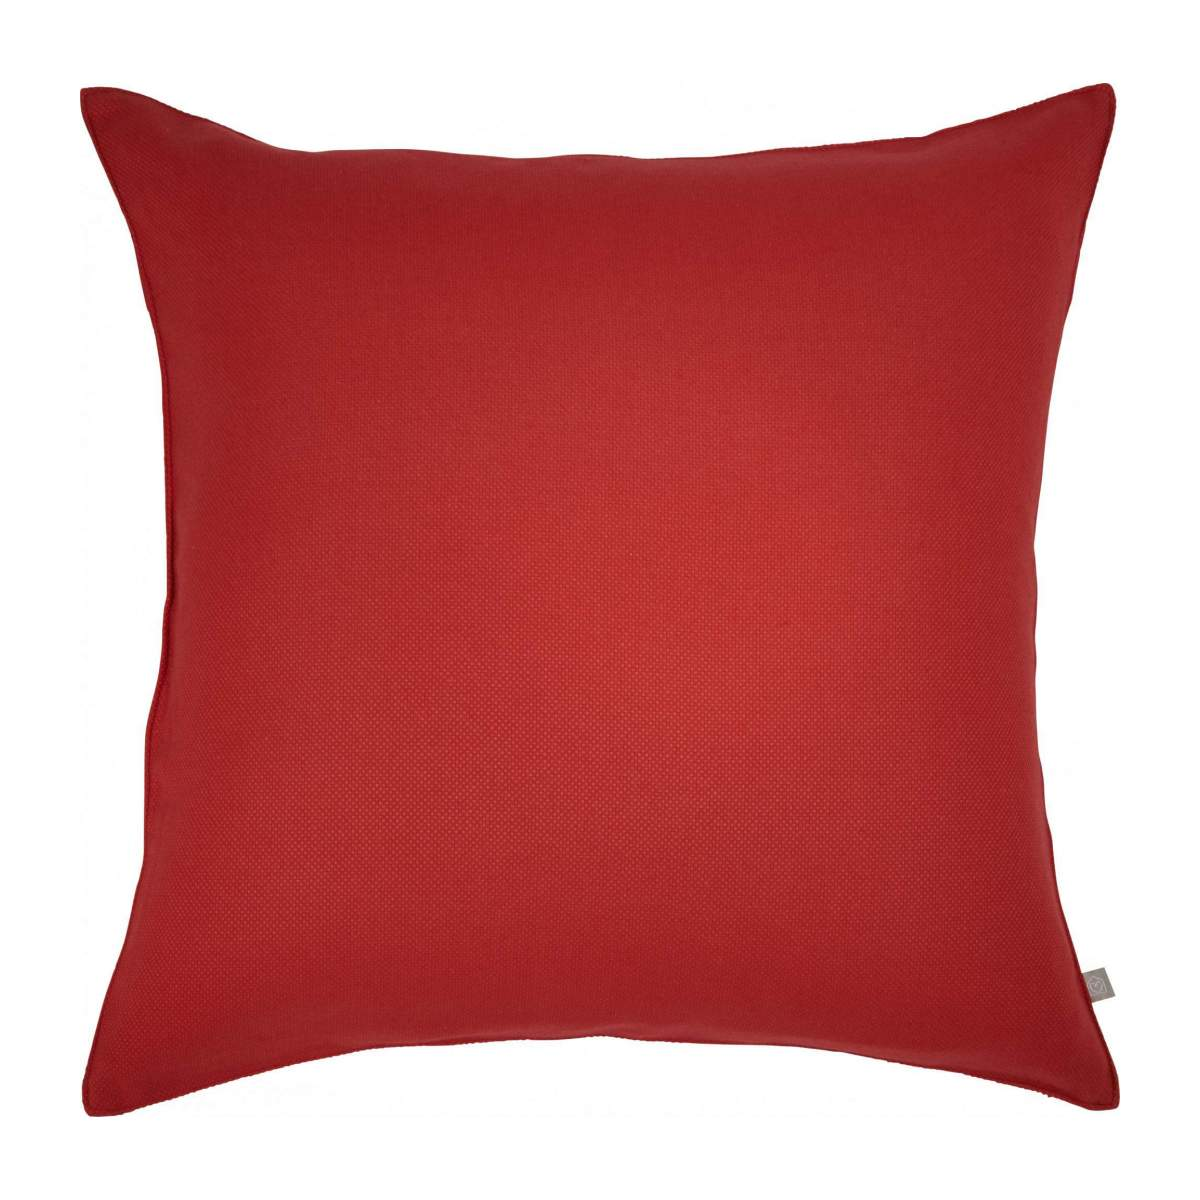 Red cushion 50x50cm n°1